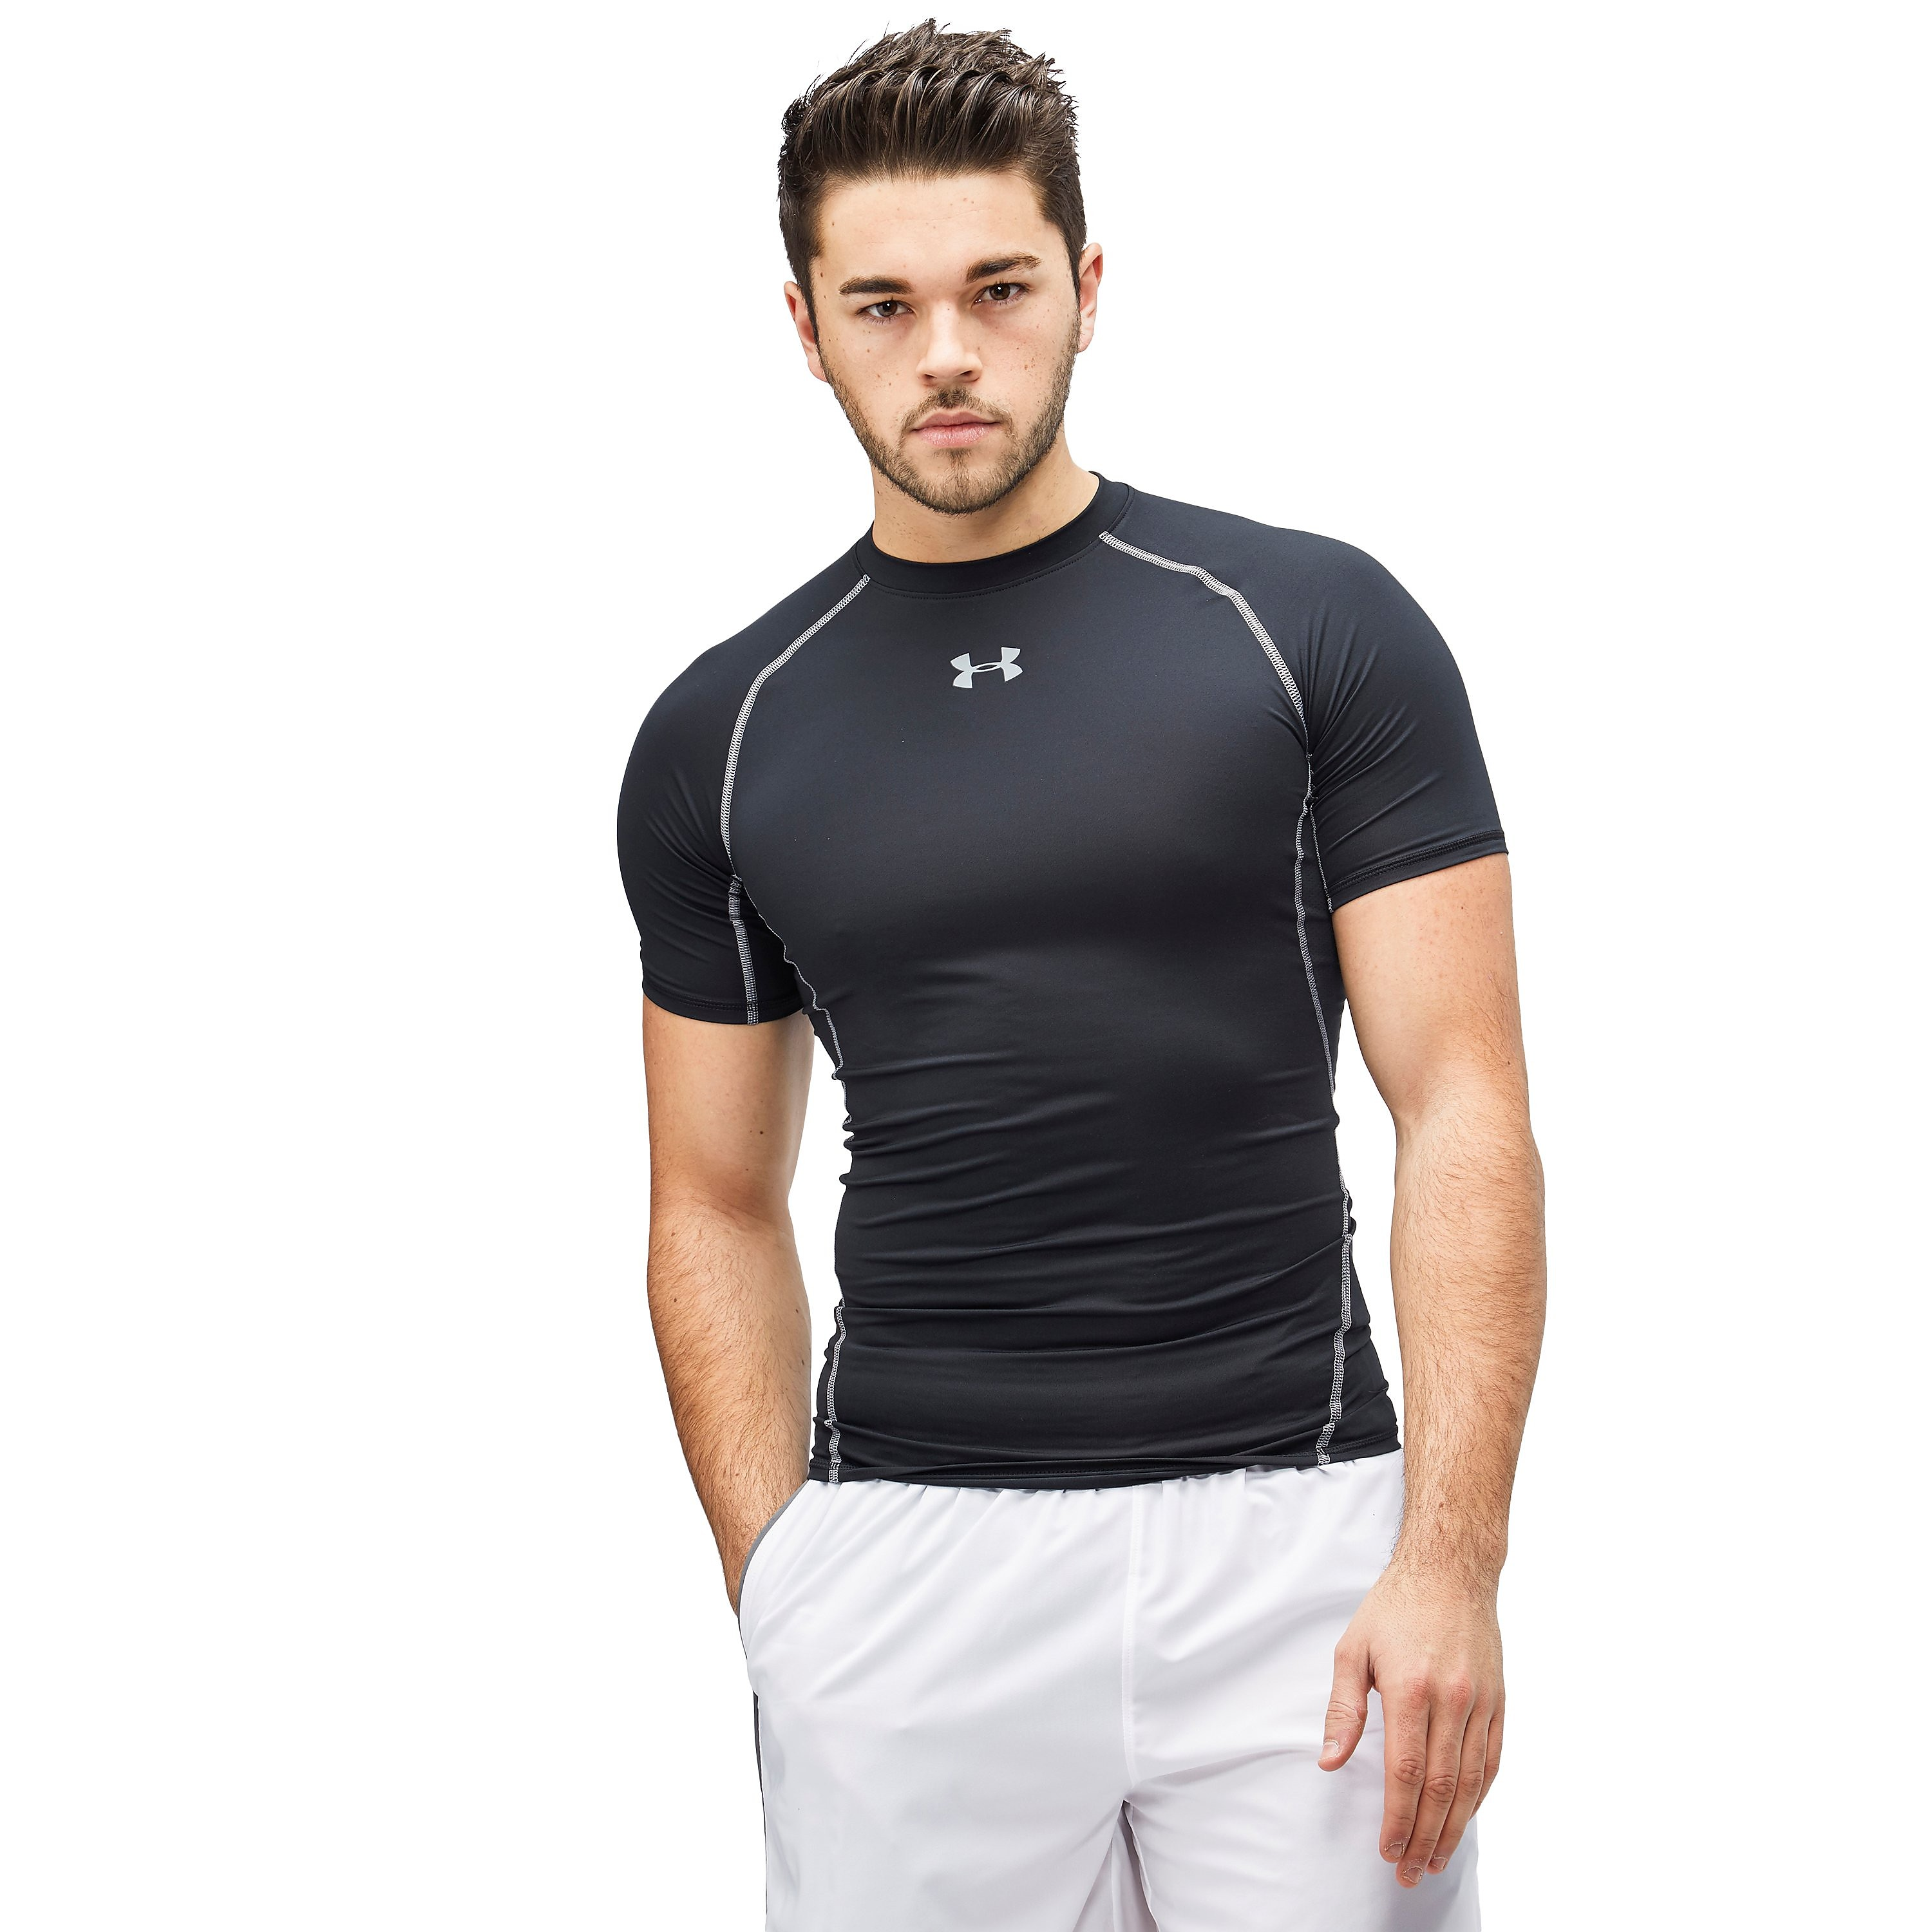 Under Armour HeatGear Armour Men's Compression T-Shirt